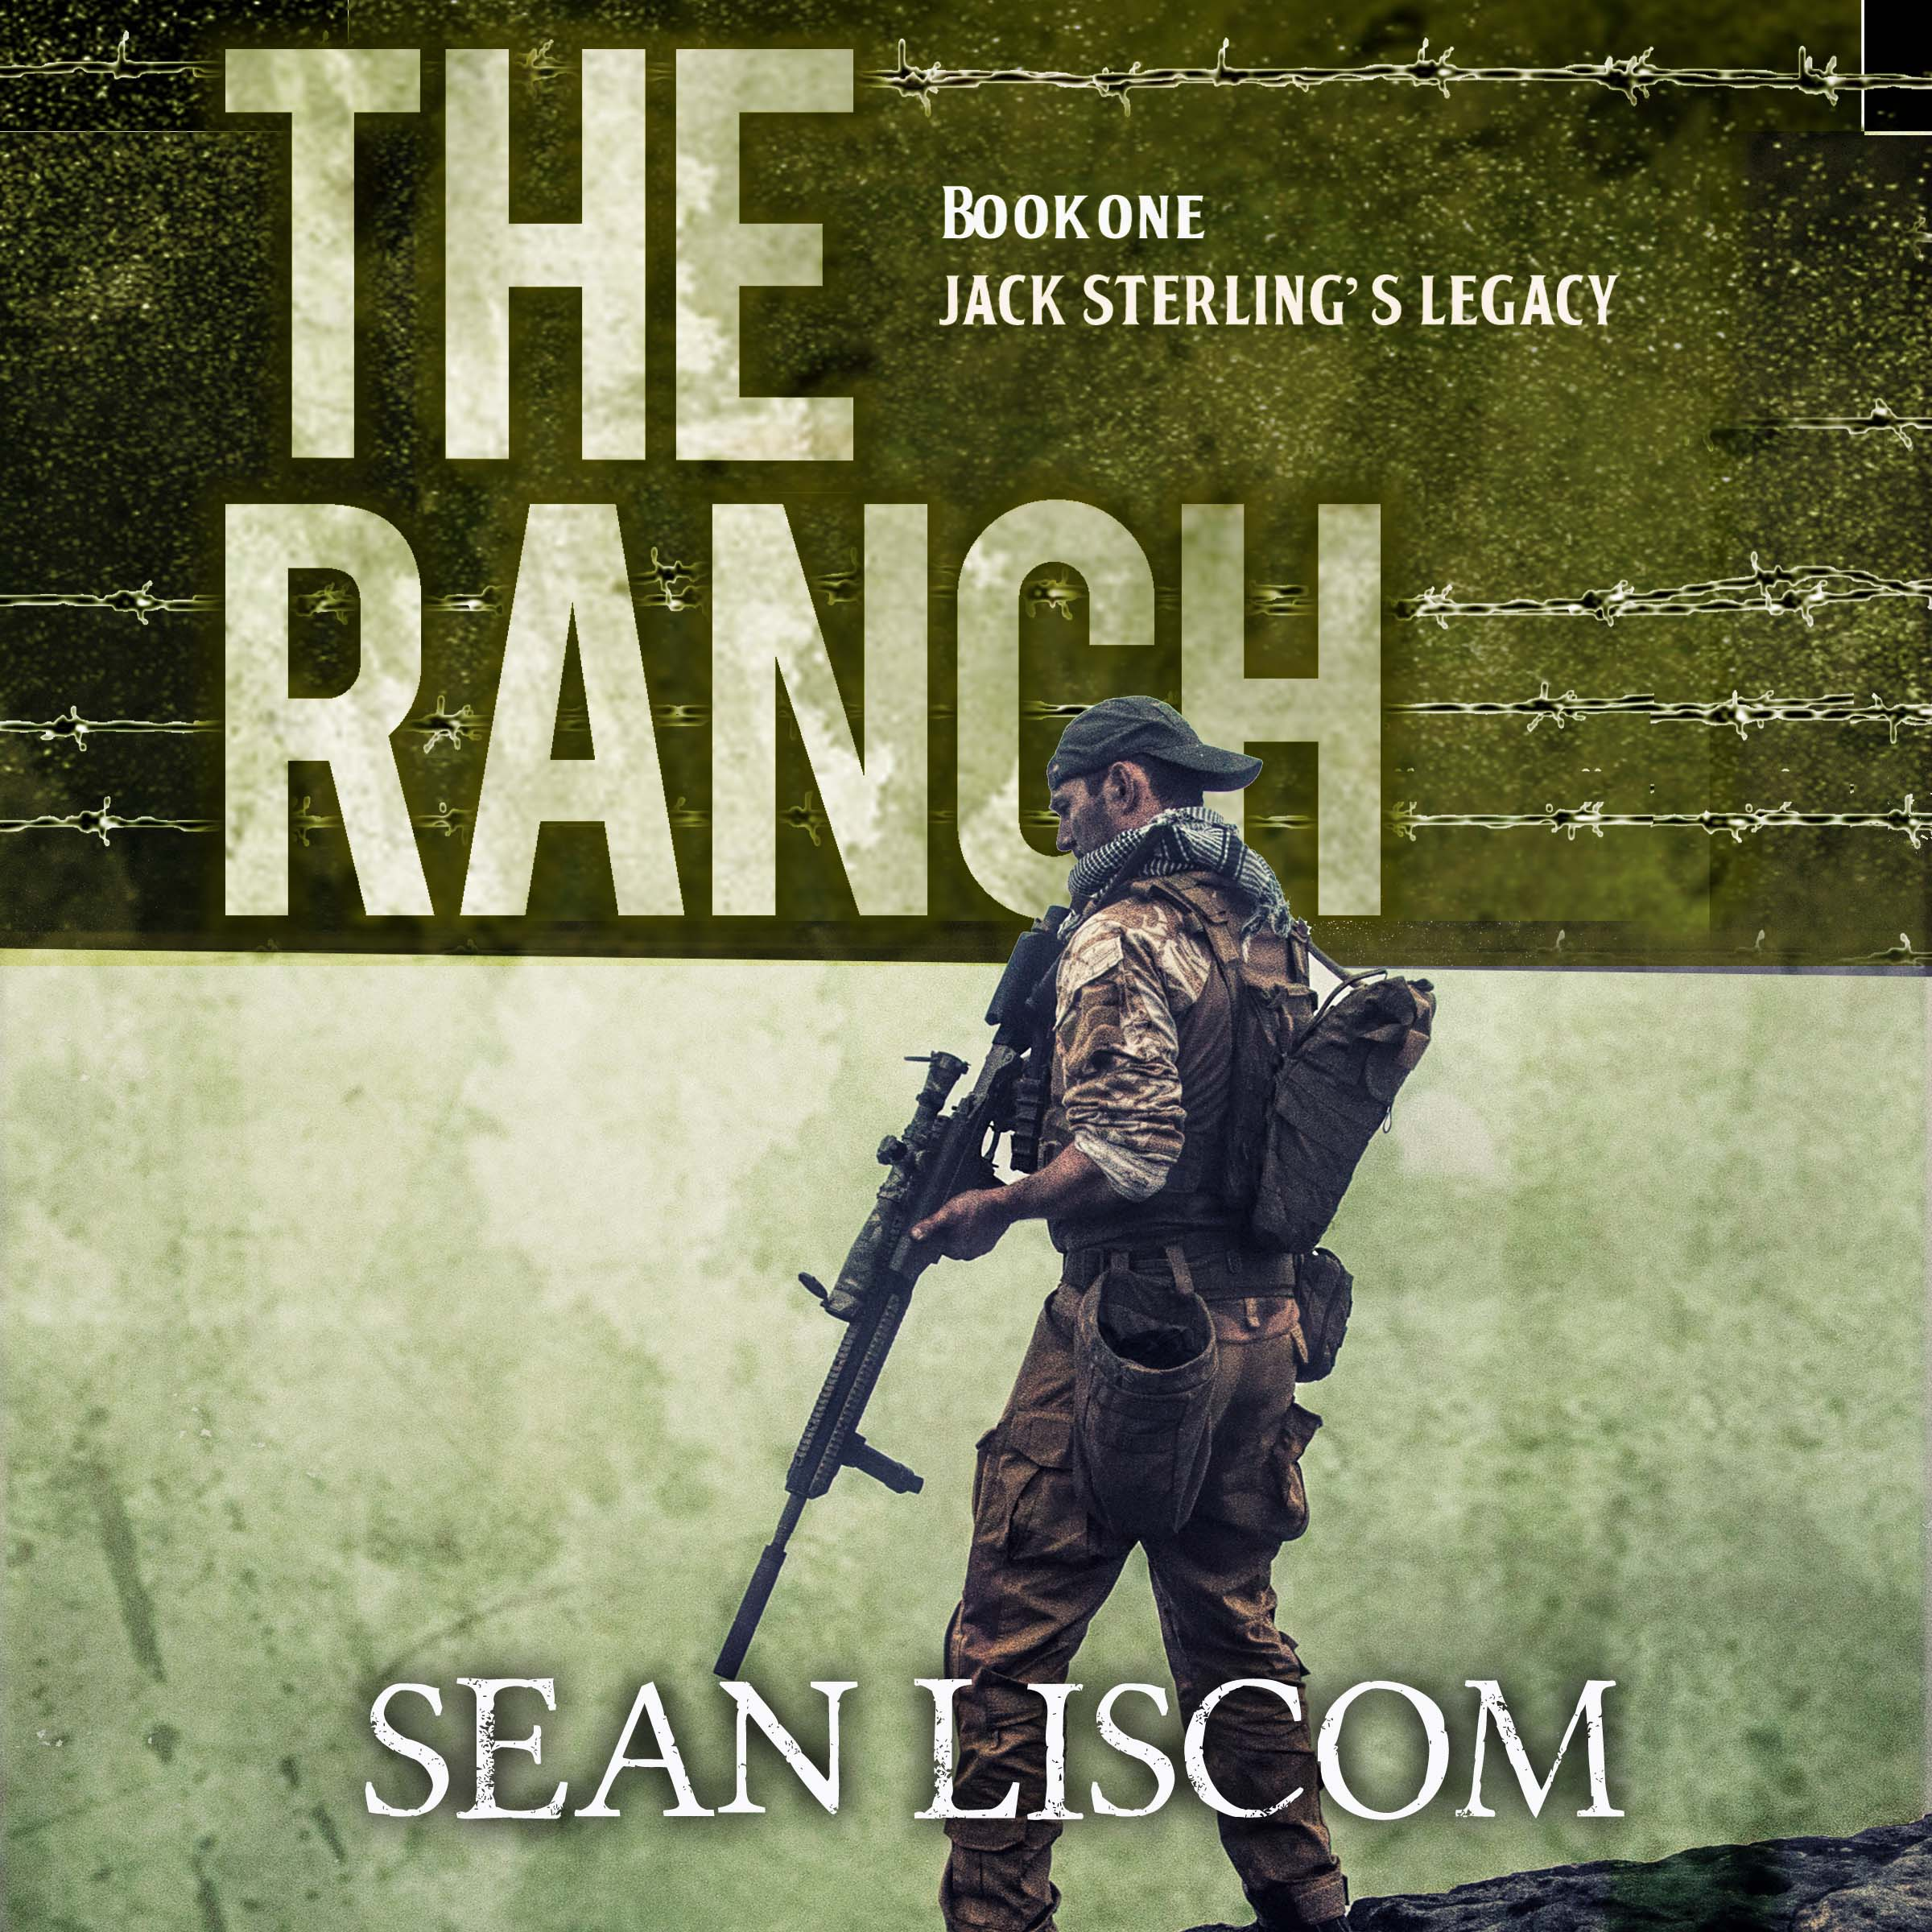 The Ranch by Sean Liscom Audiobook Cover